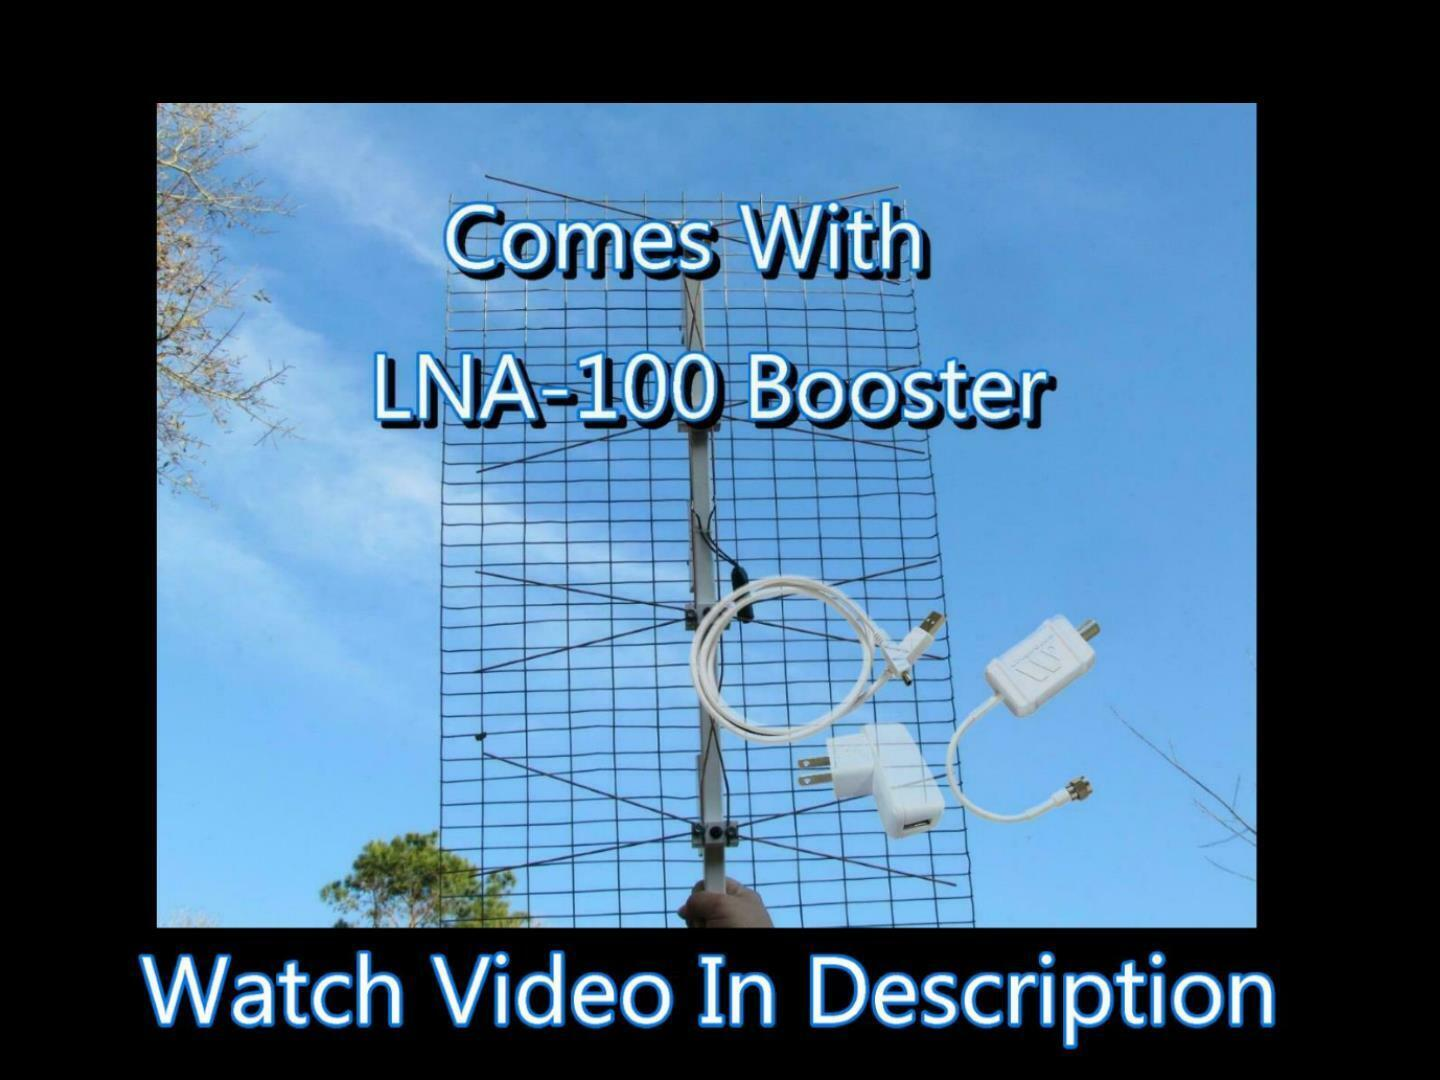 The Ultimate Outdoor TV Antenna with LNA-Boost 100 Amplifier 20+ DB Gain. Available Now for 120.00